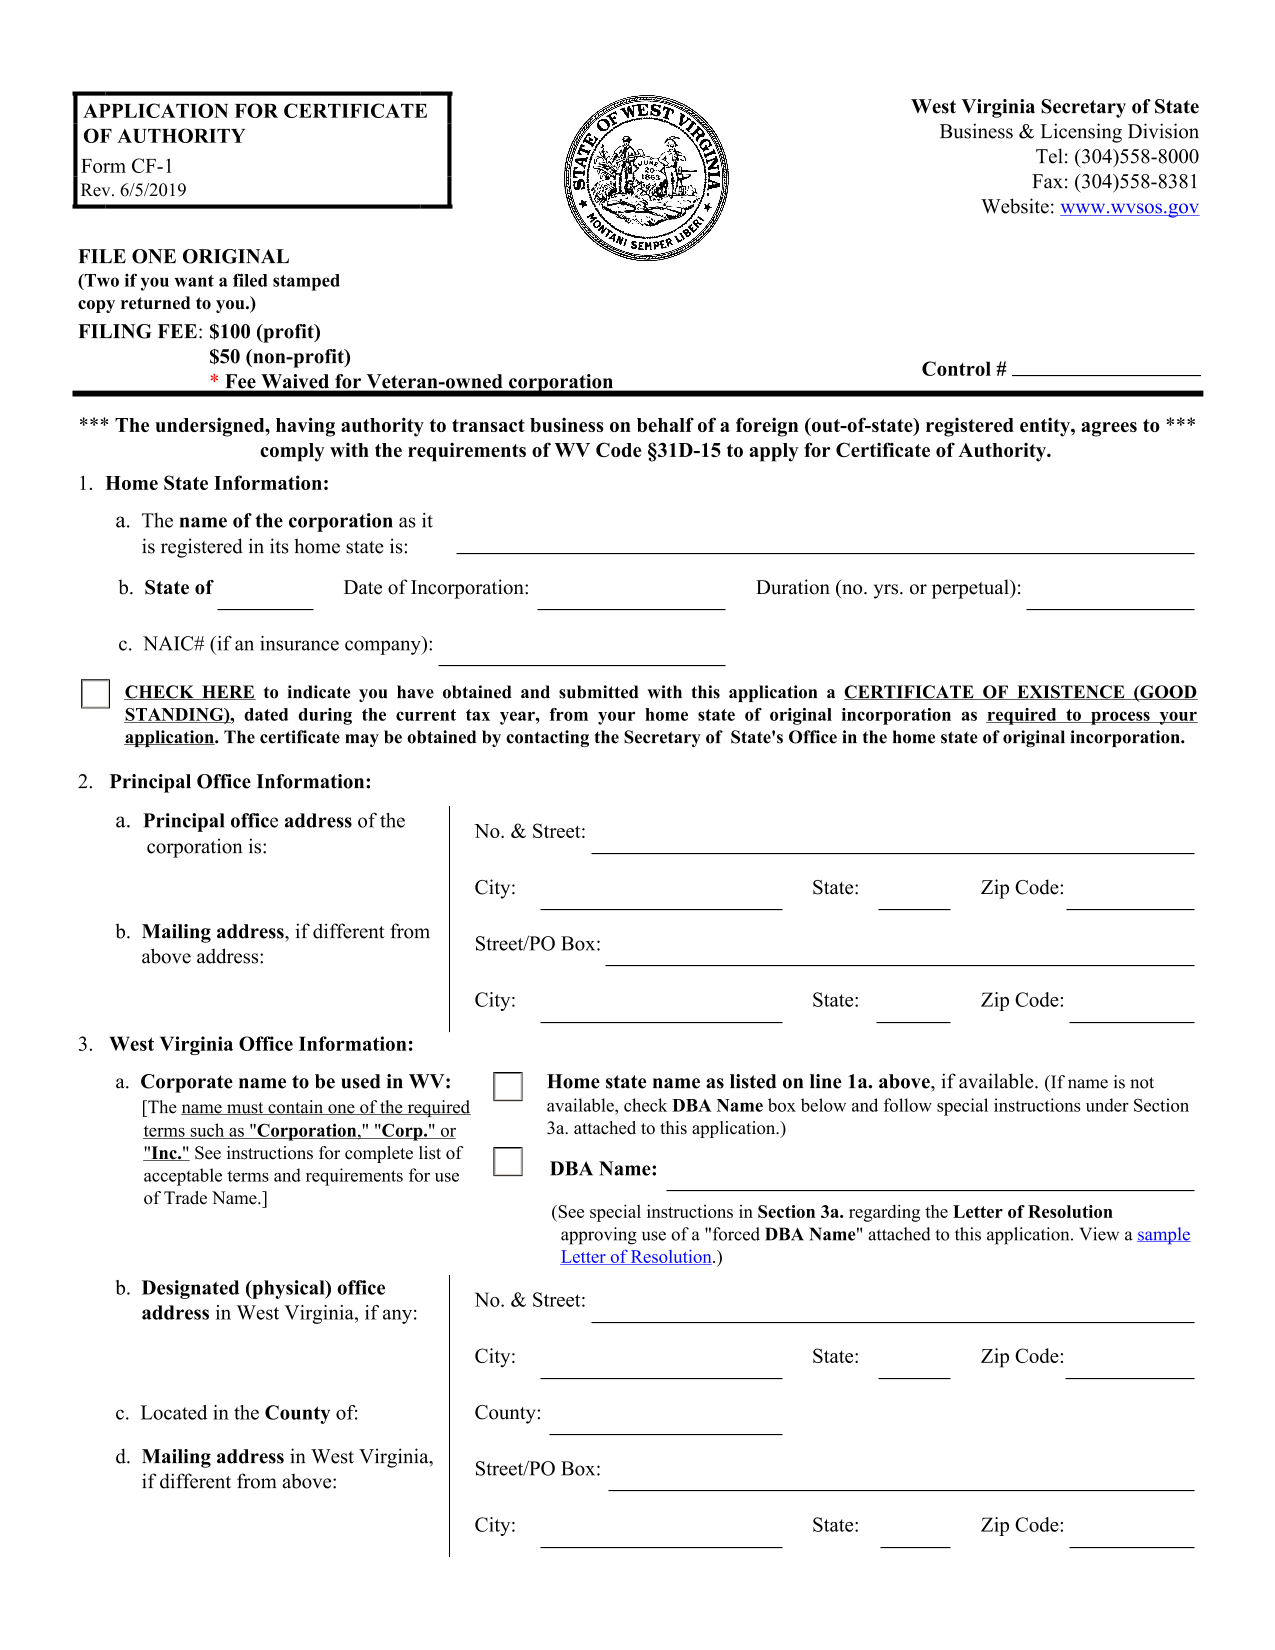 west-virginia-foreign-nonprofit-application-for-certificate-of-authority